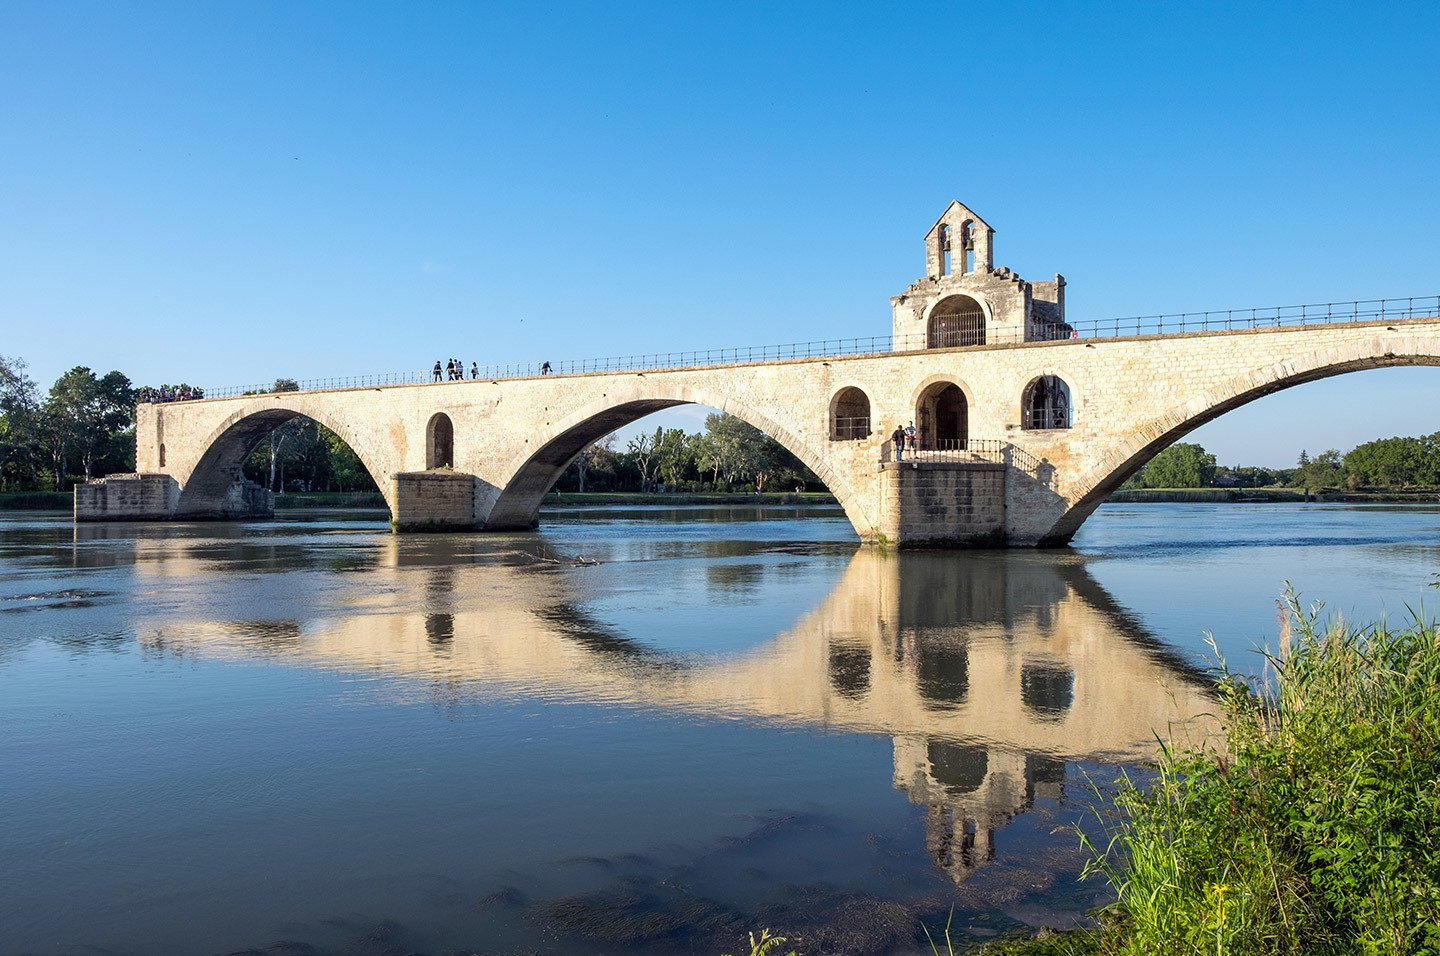 The Pont d'Avignon or Pont St-Bénezet